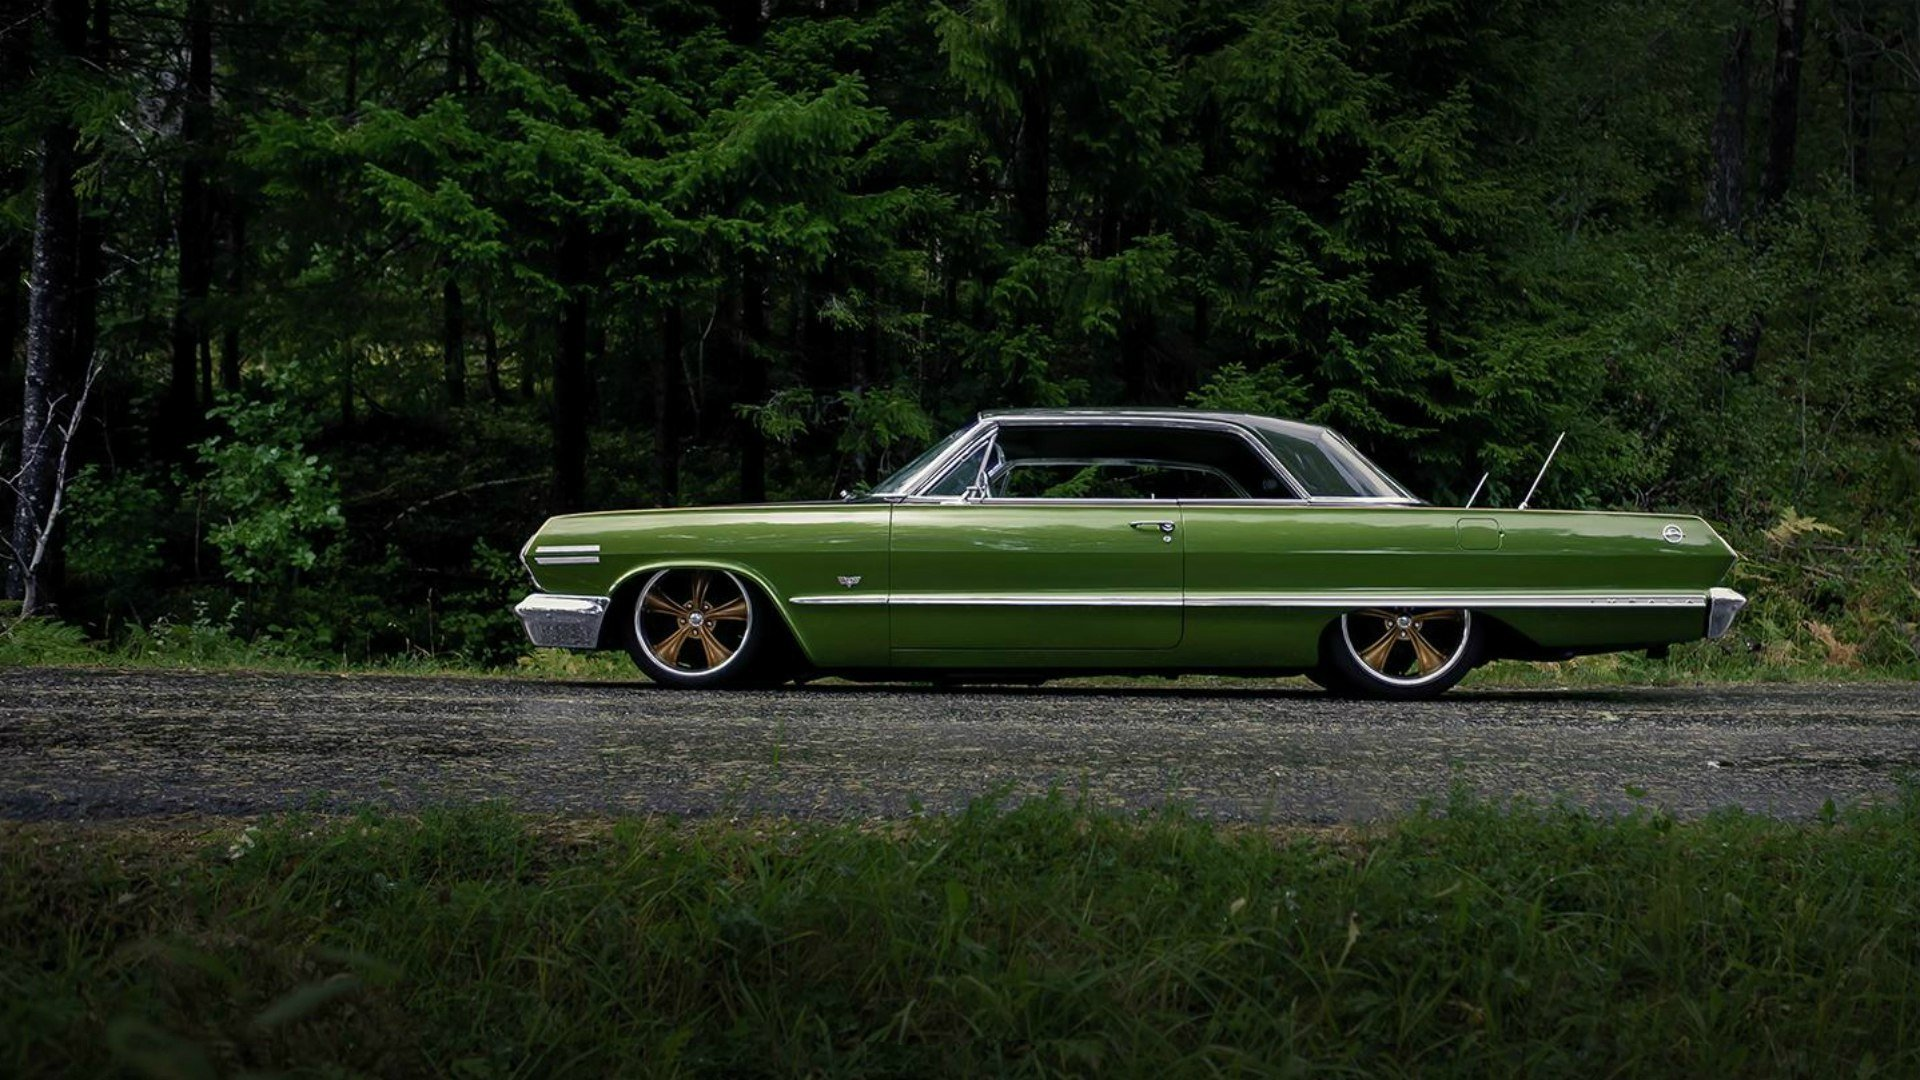 Chevrolet Impala Lowrider wallpaper | 1920x1080 | 421237 | WallpaperUP